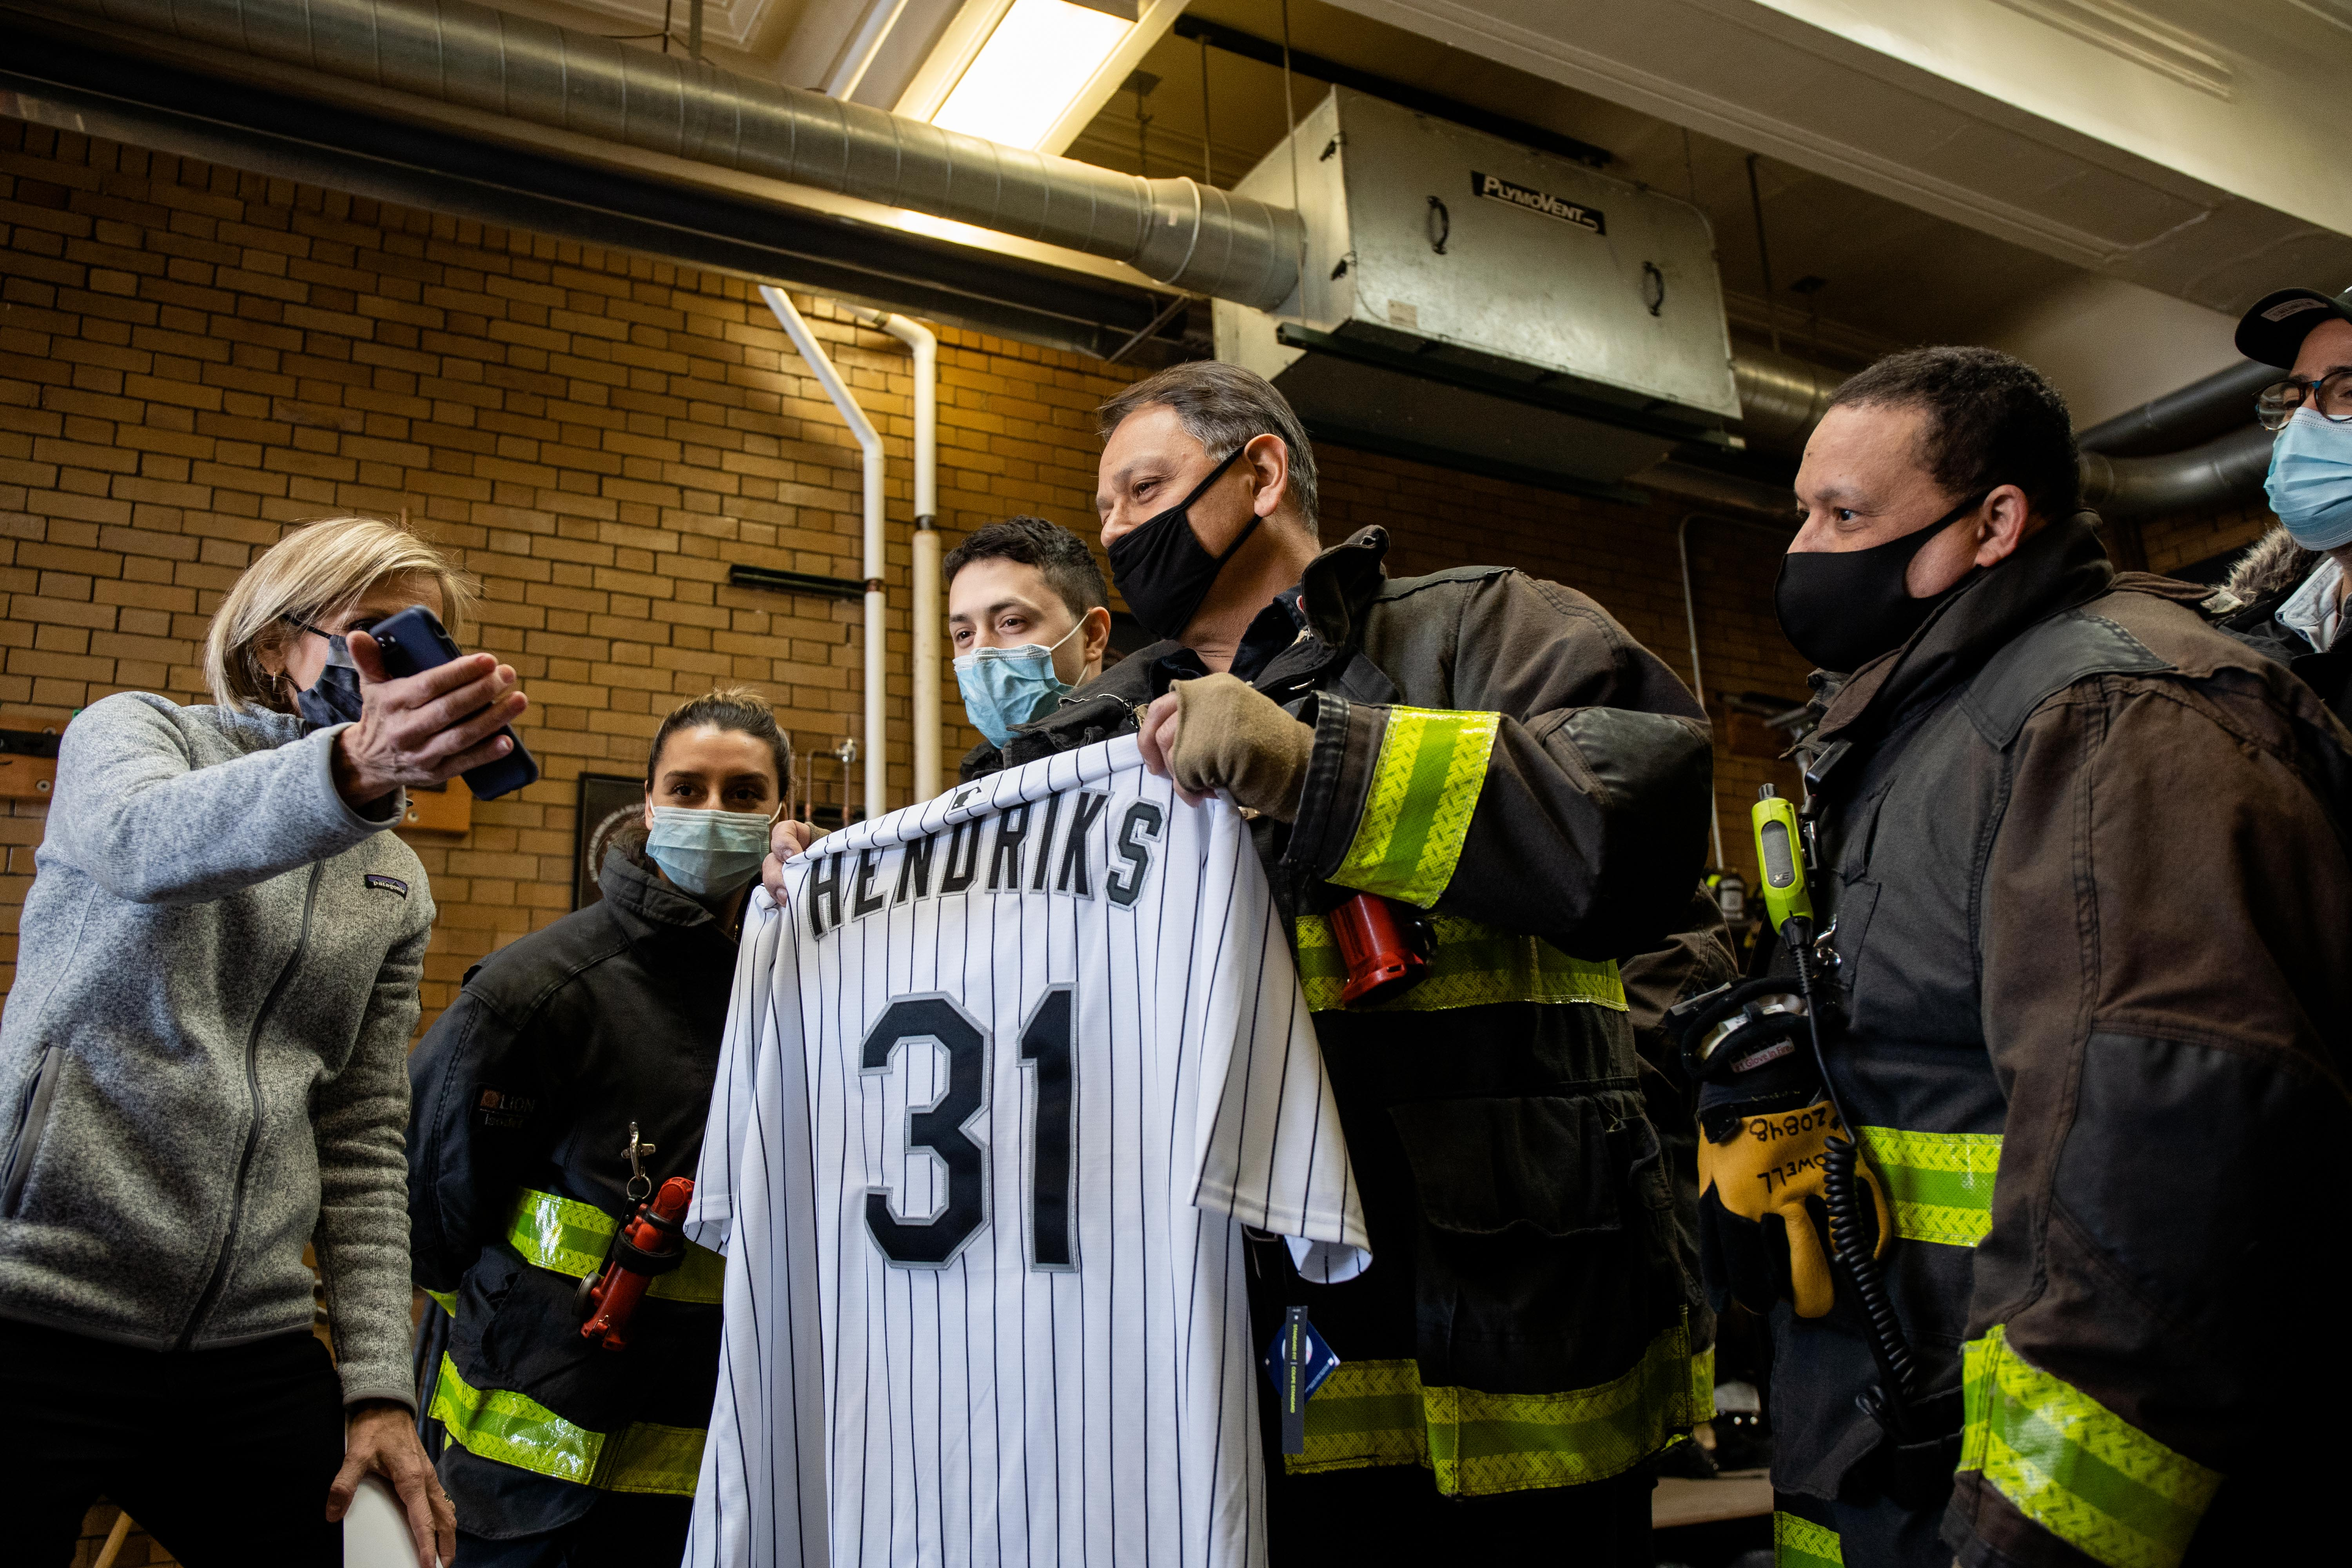 Chicago Fire Department firefighters at Engine 29 in Bridgeport watch a video of White Sox pitcher Liam Hendriks and his wife, who thanked them for their service, Thursday morning. The couple donated food from local restaurants to the firefighters.